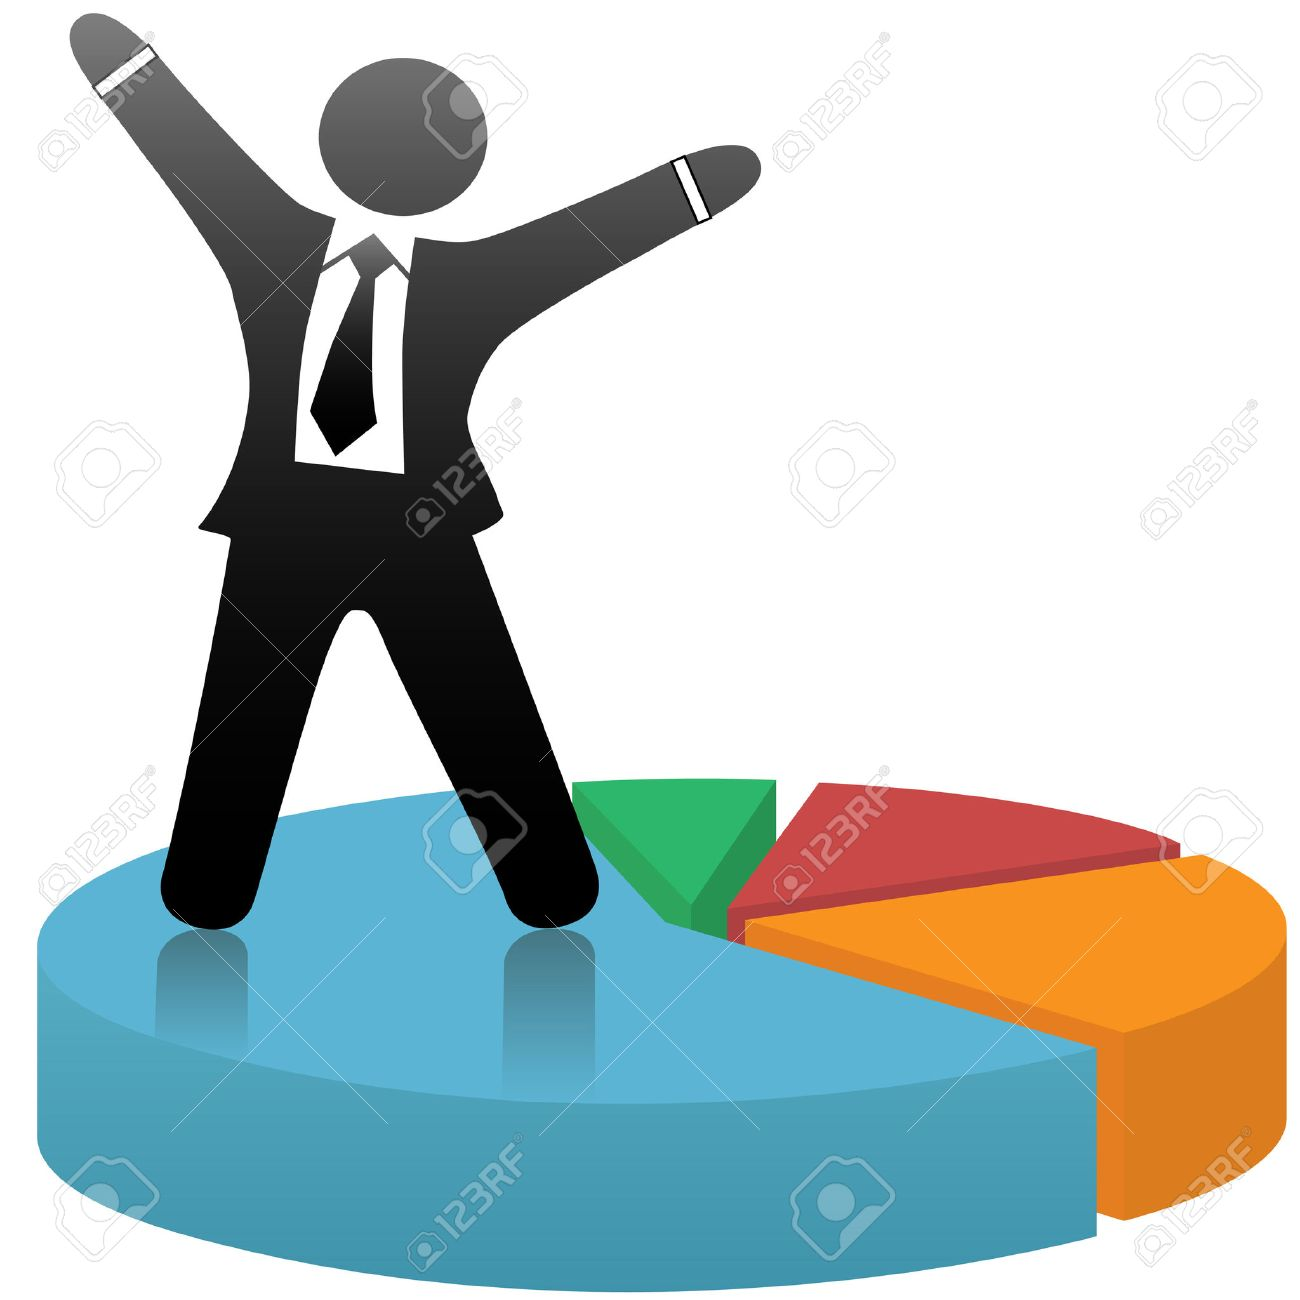 A symbol business man celebrates a financial market share success standing on a colorful pie chart. Stock Vector - 3410320